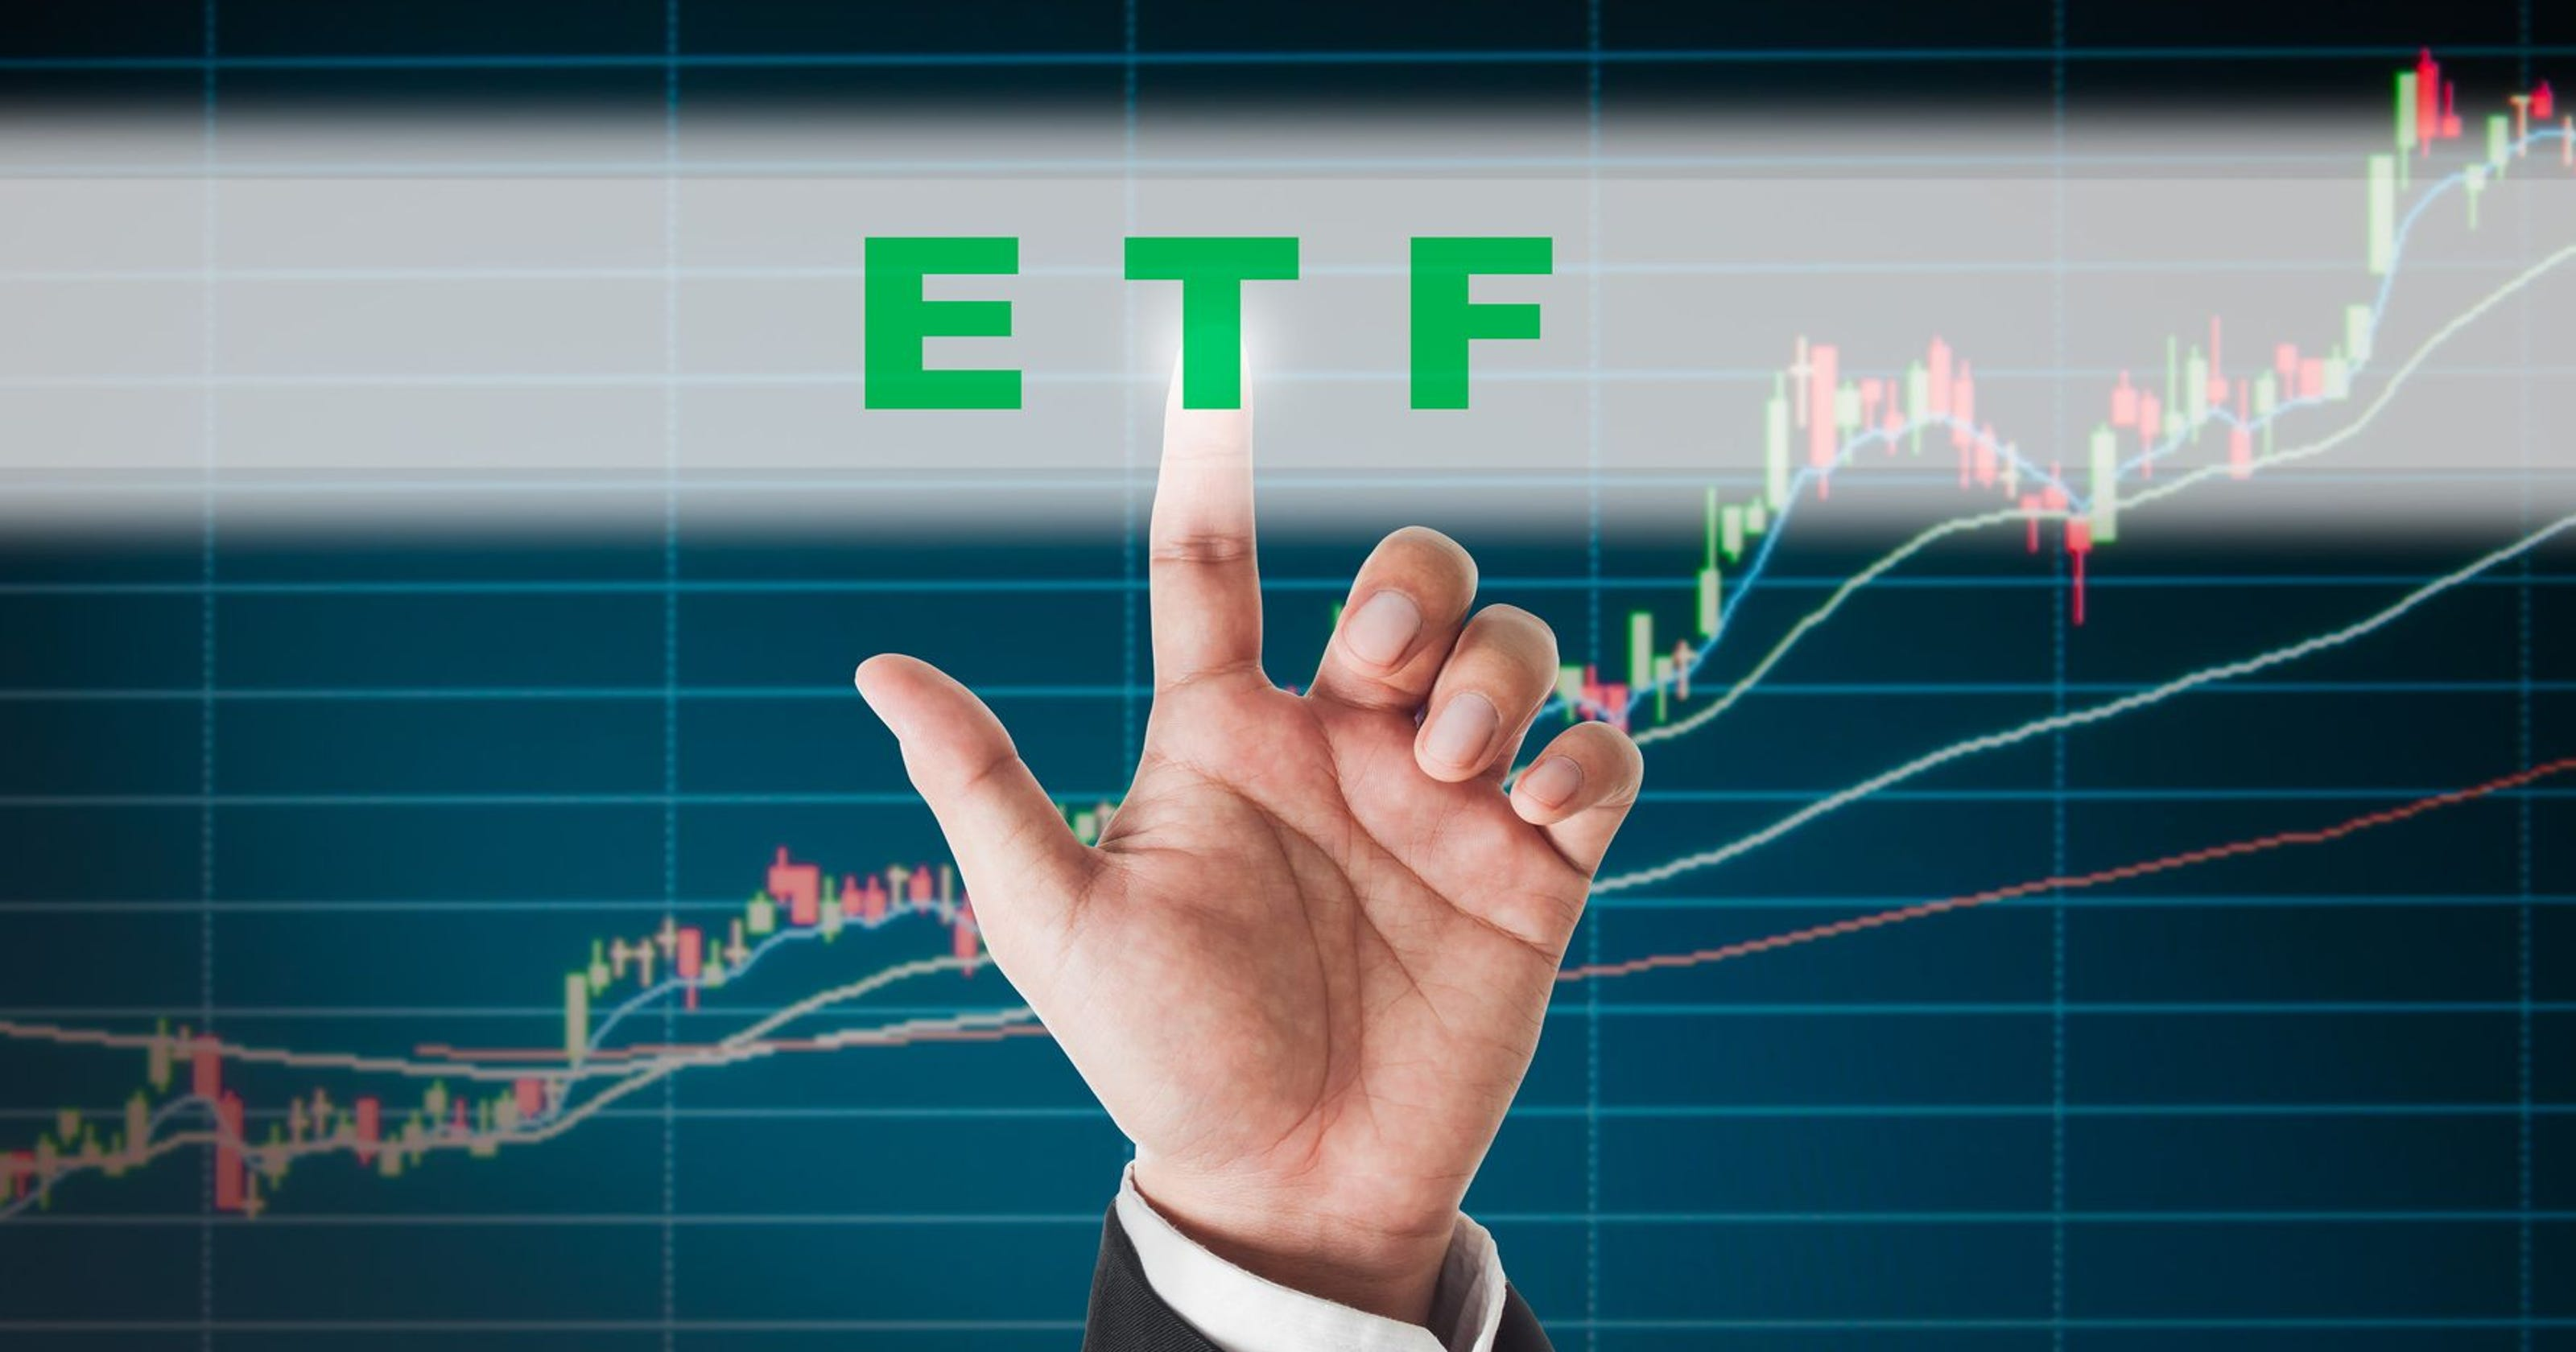 Ask A Fool Are Leveraged Etfs Ever Good Investments